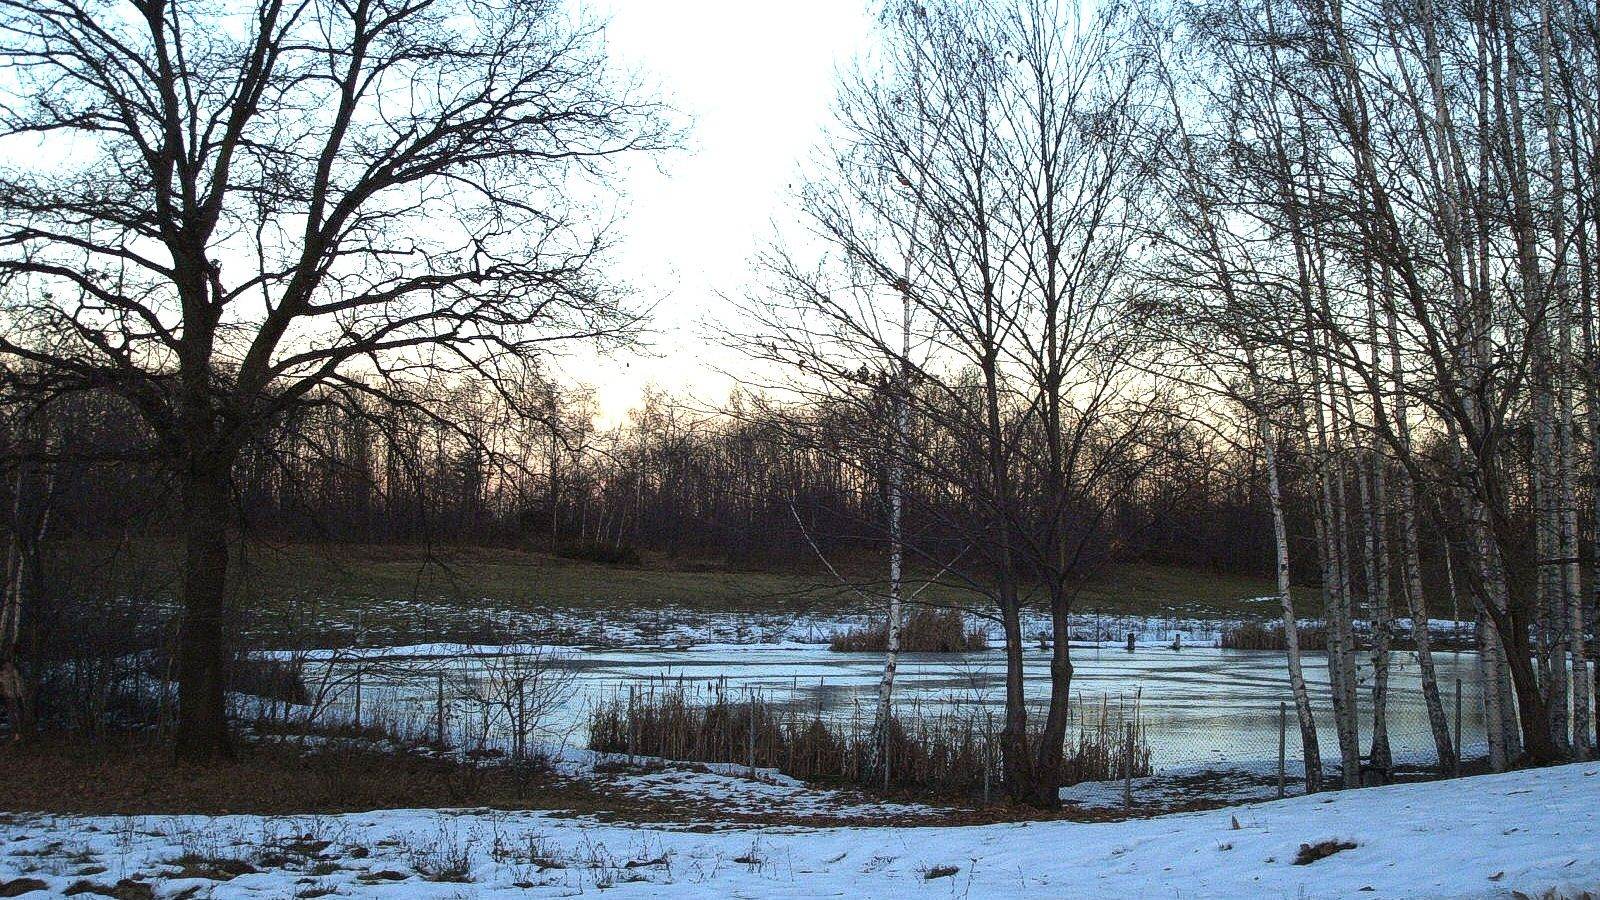 Photo of a pond surrounded by trees and snow.